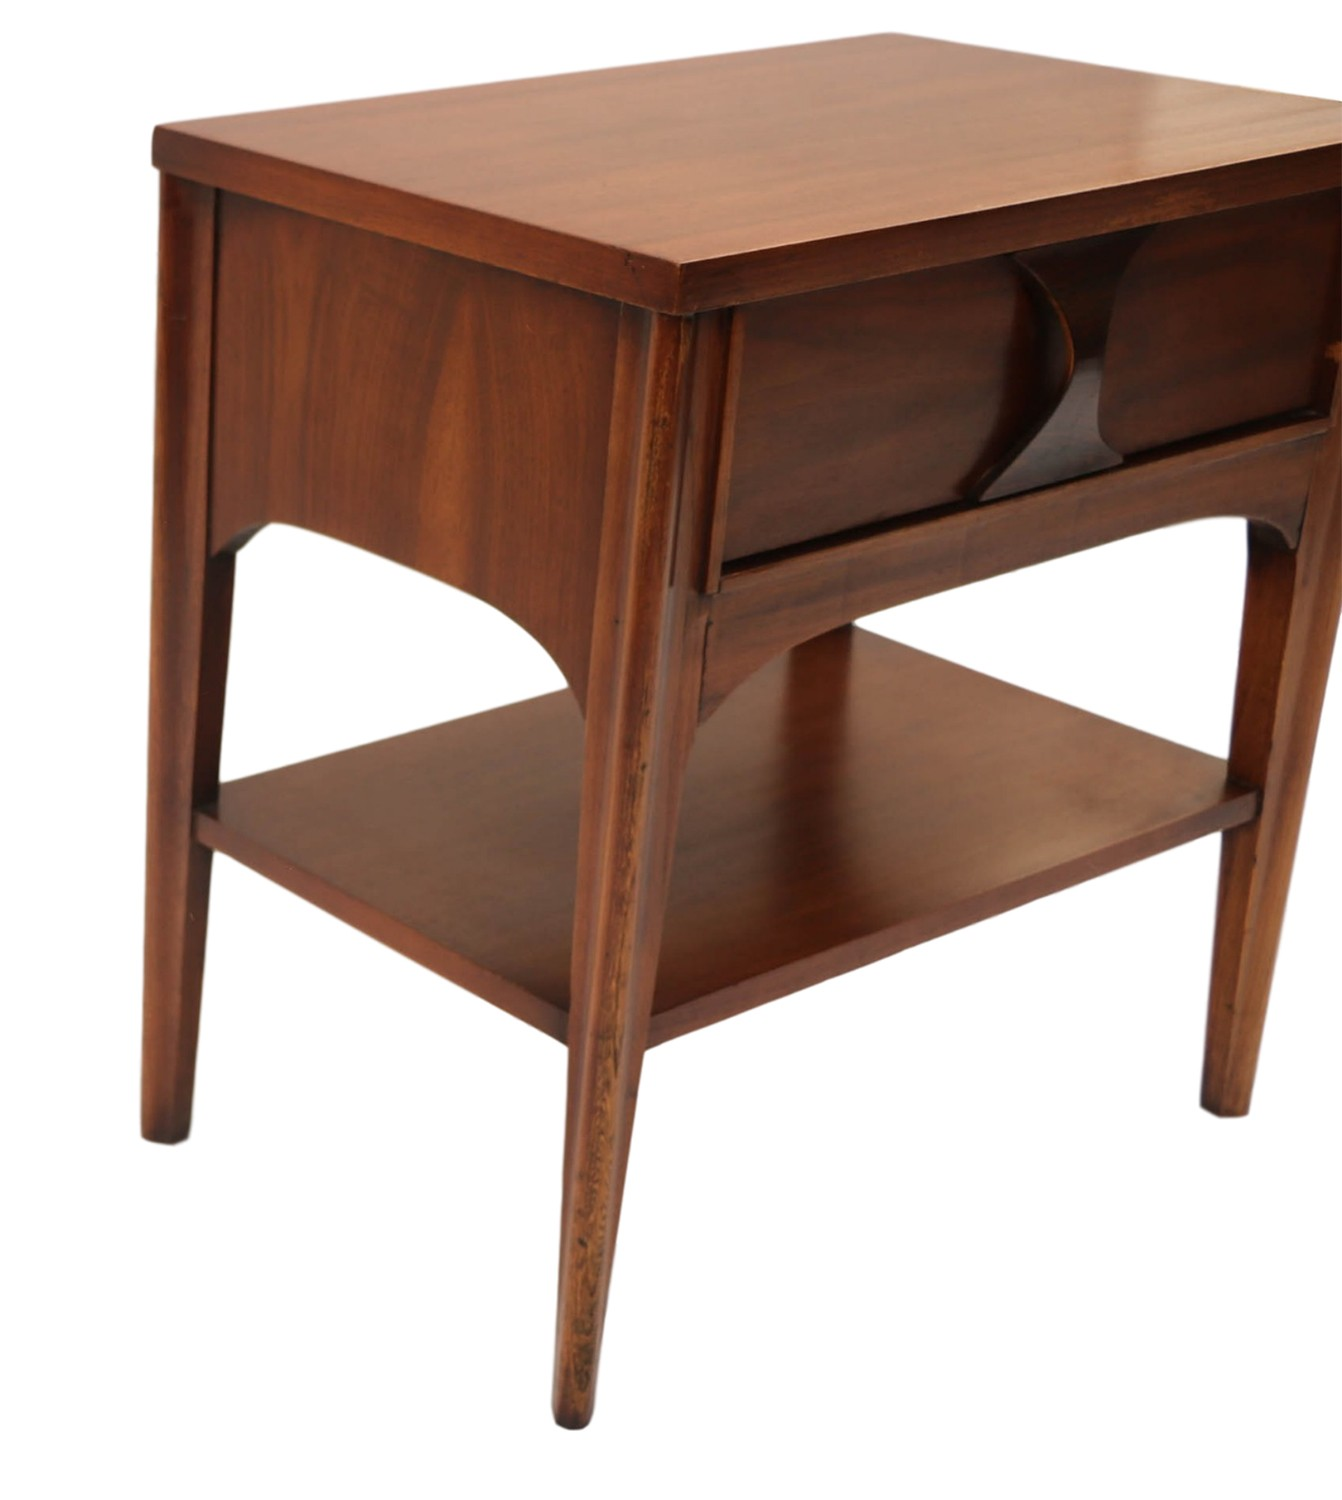 mid century modern kent coffey side table nightstand. Black Bedroom Furniture Sets. Home Design Ideas